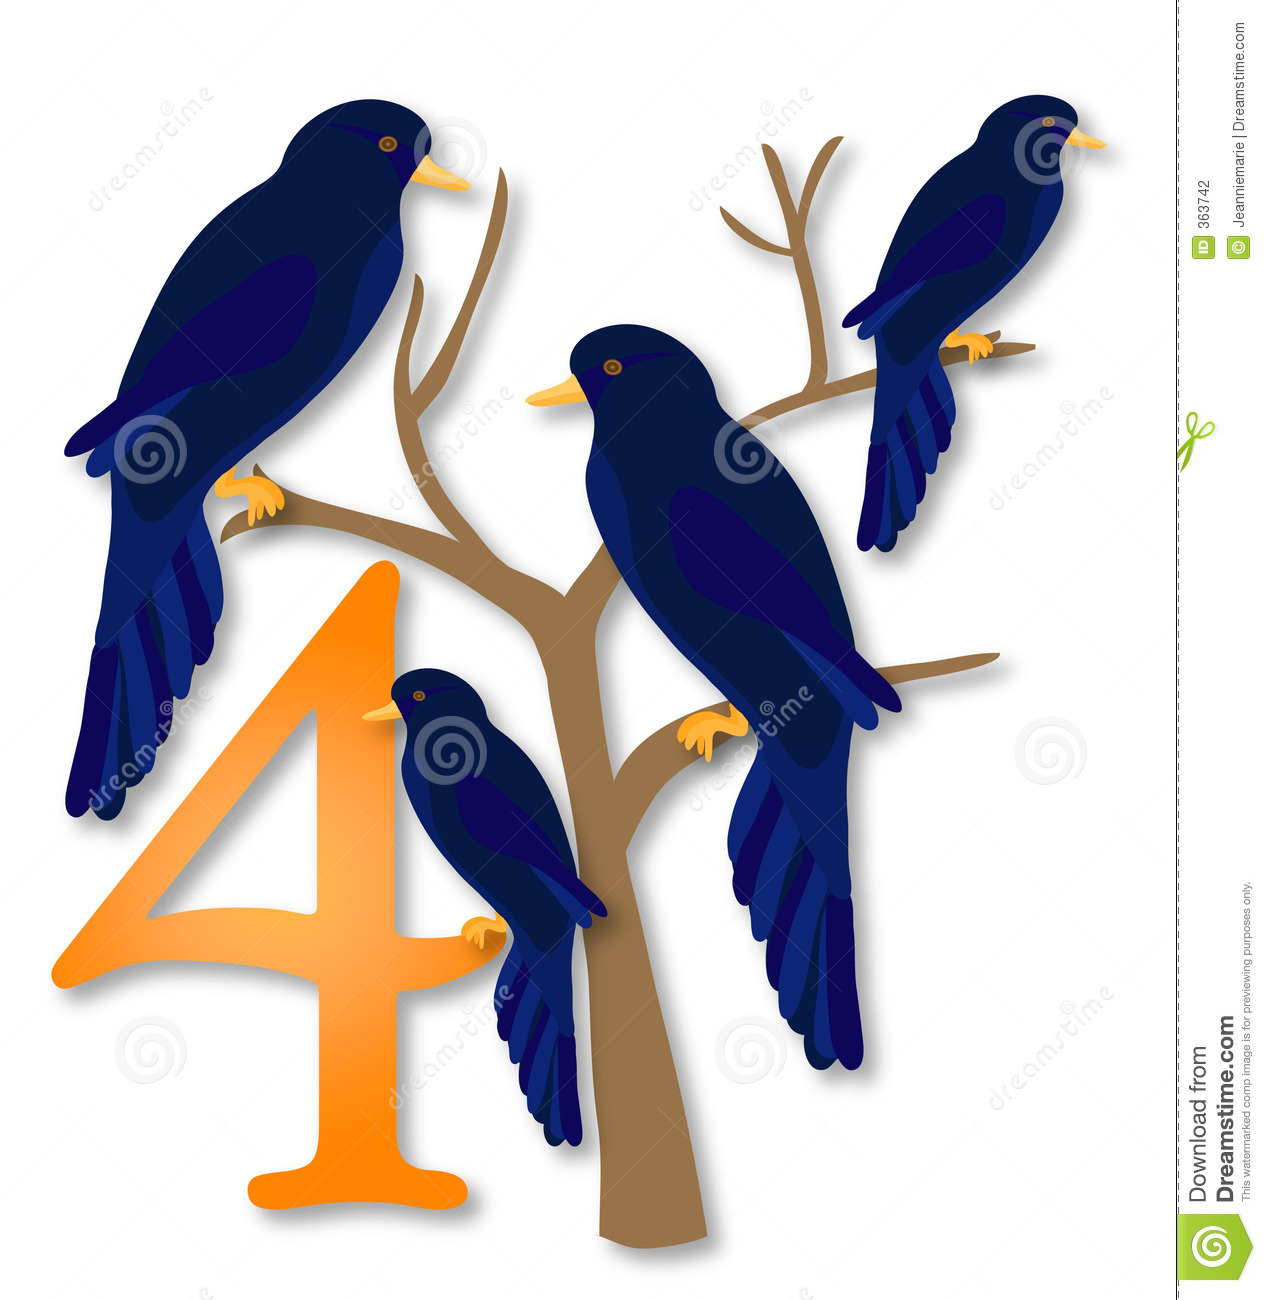 12 days of christmas 2 turtle doves stock illustration